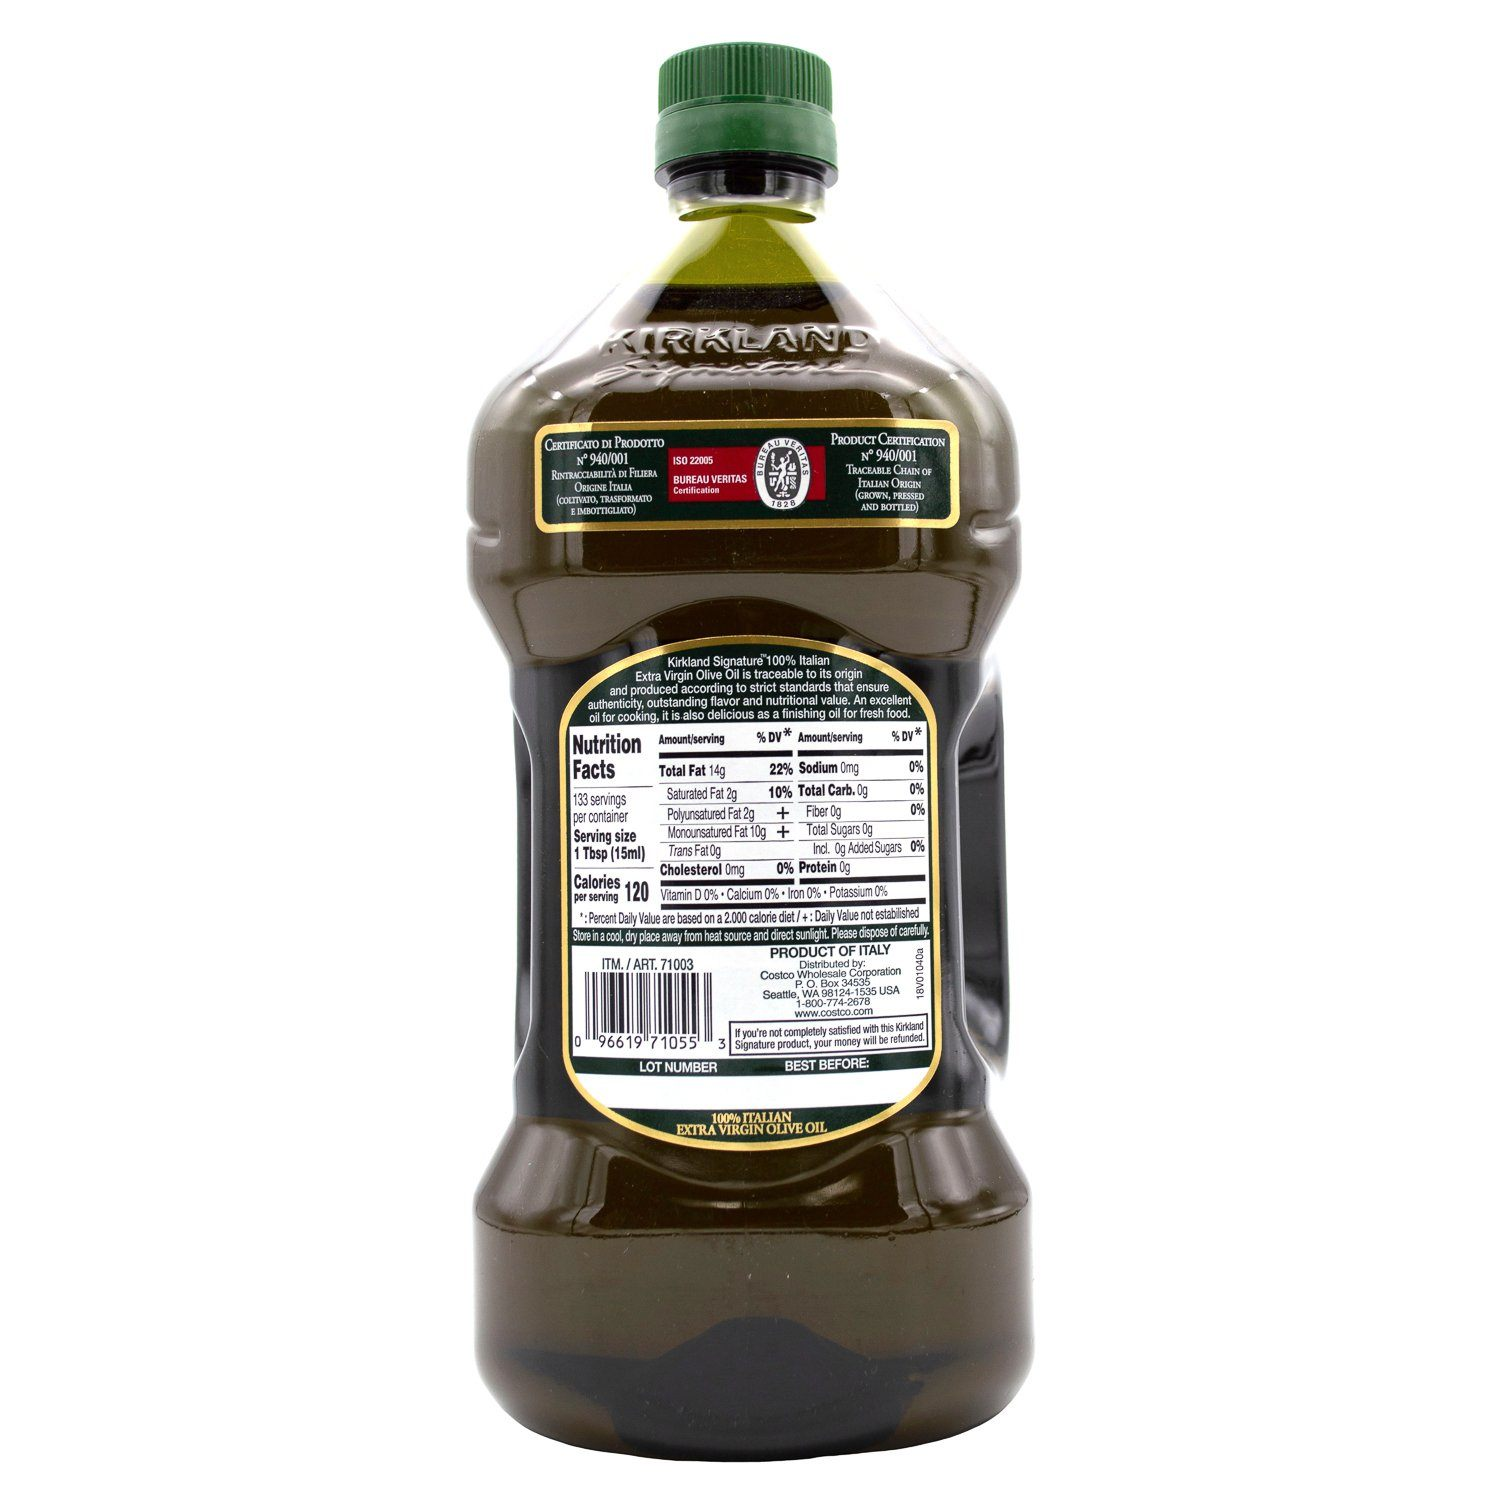 Kirkland Signature Extra Virgin Olive Oil Kirkland Signature